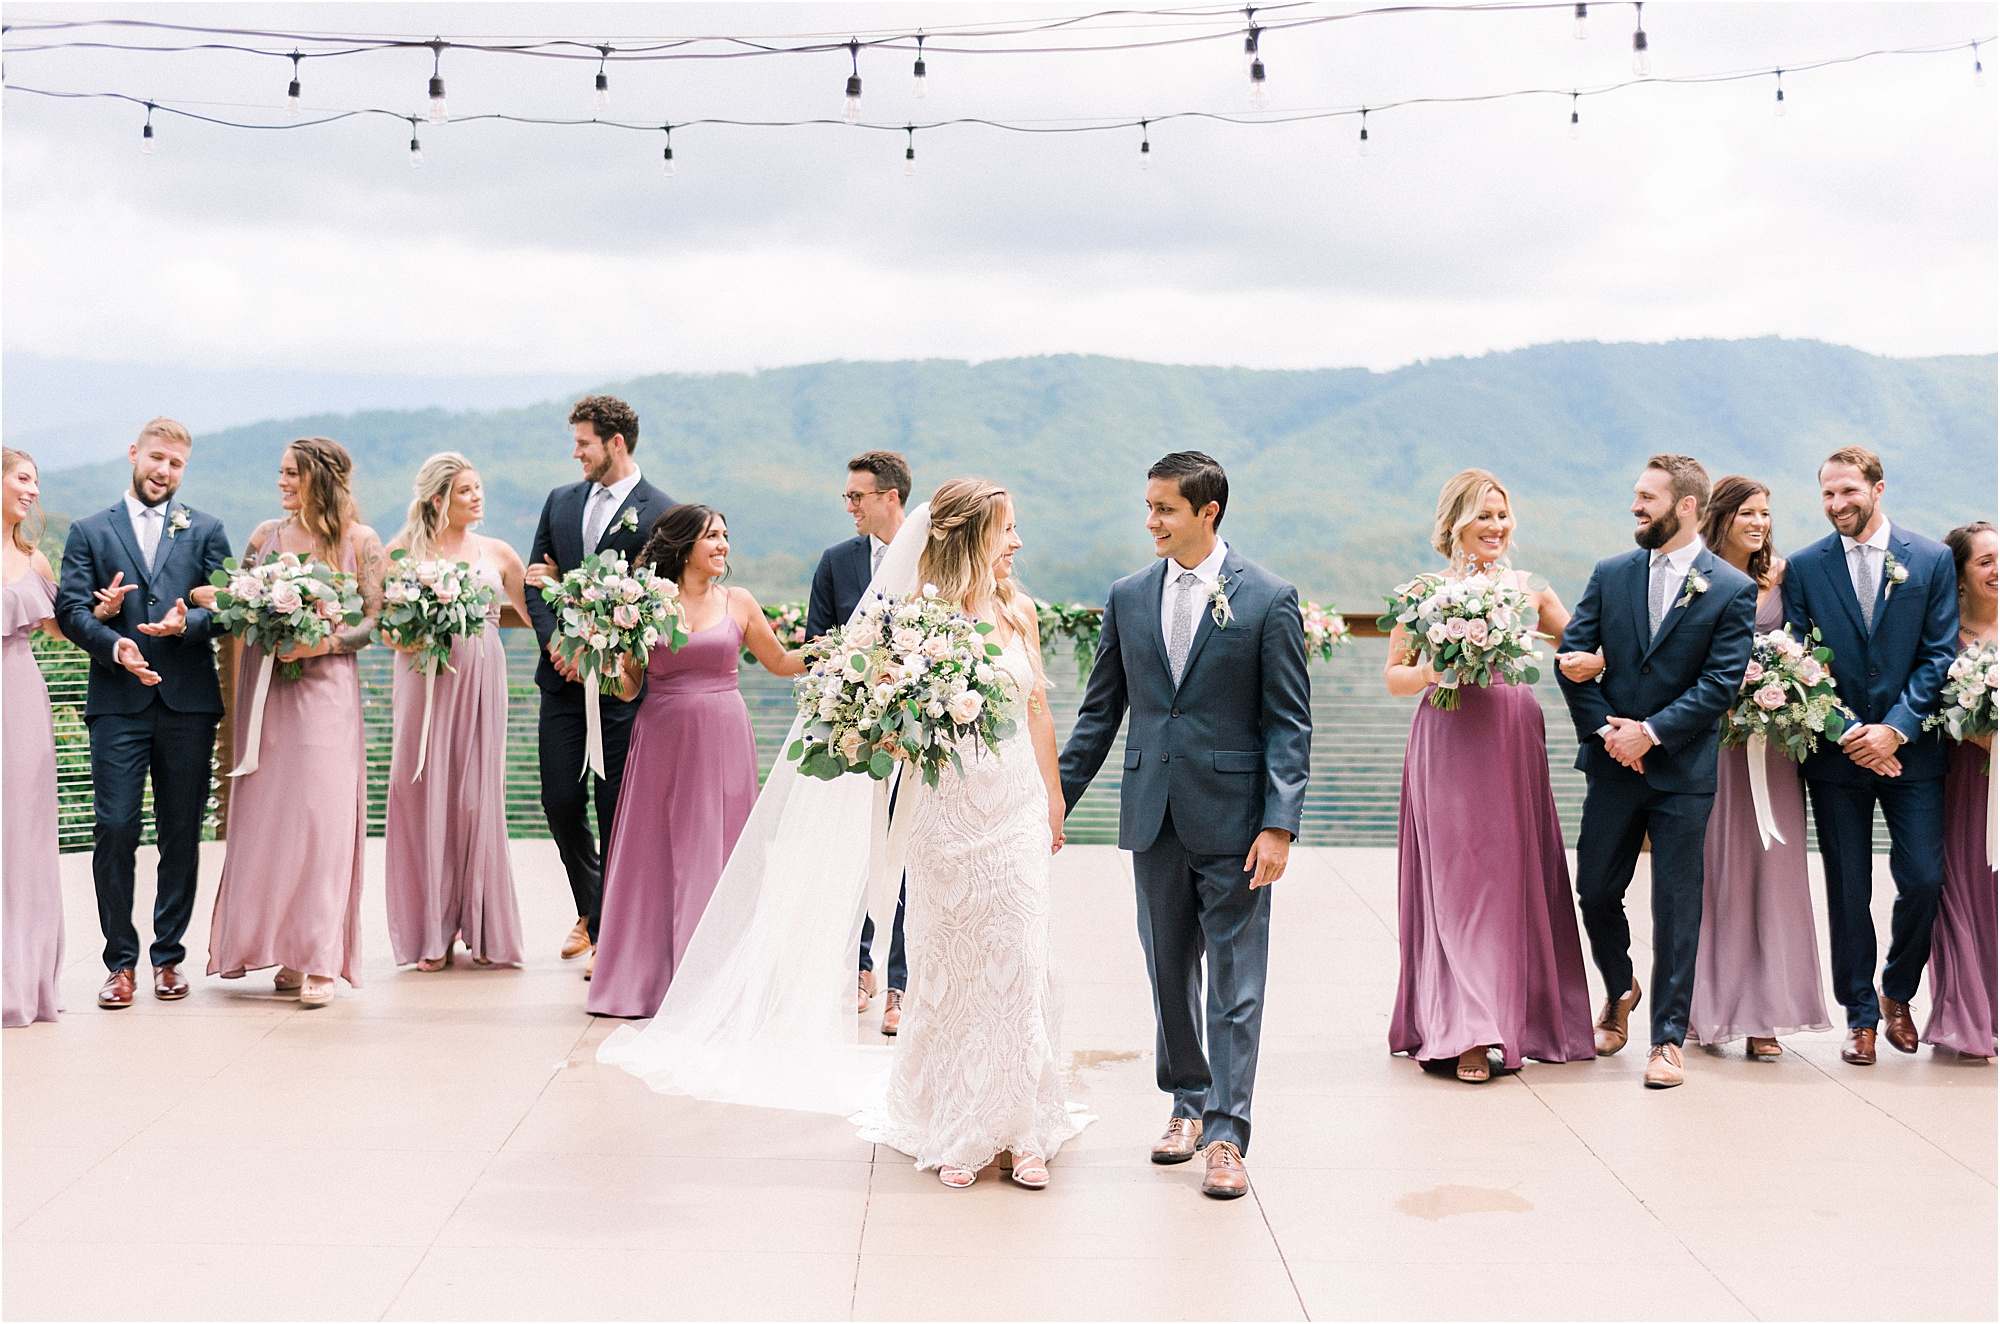 bride and groom walk with bridal party in blue suits and purple bridesmaid dresses